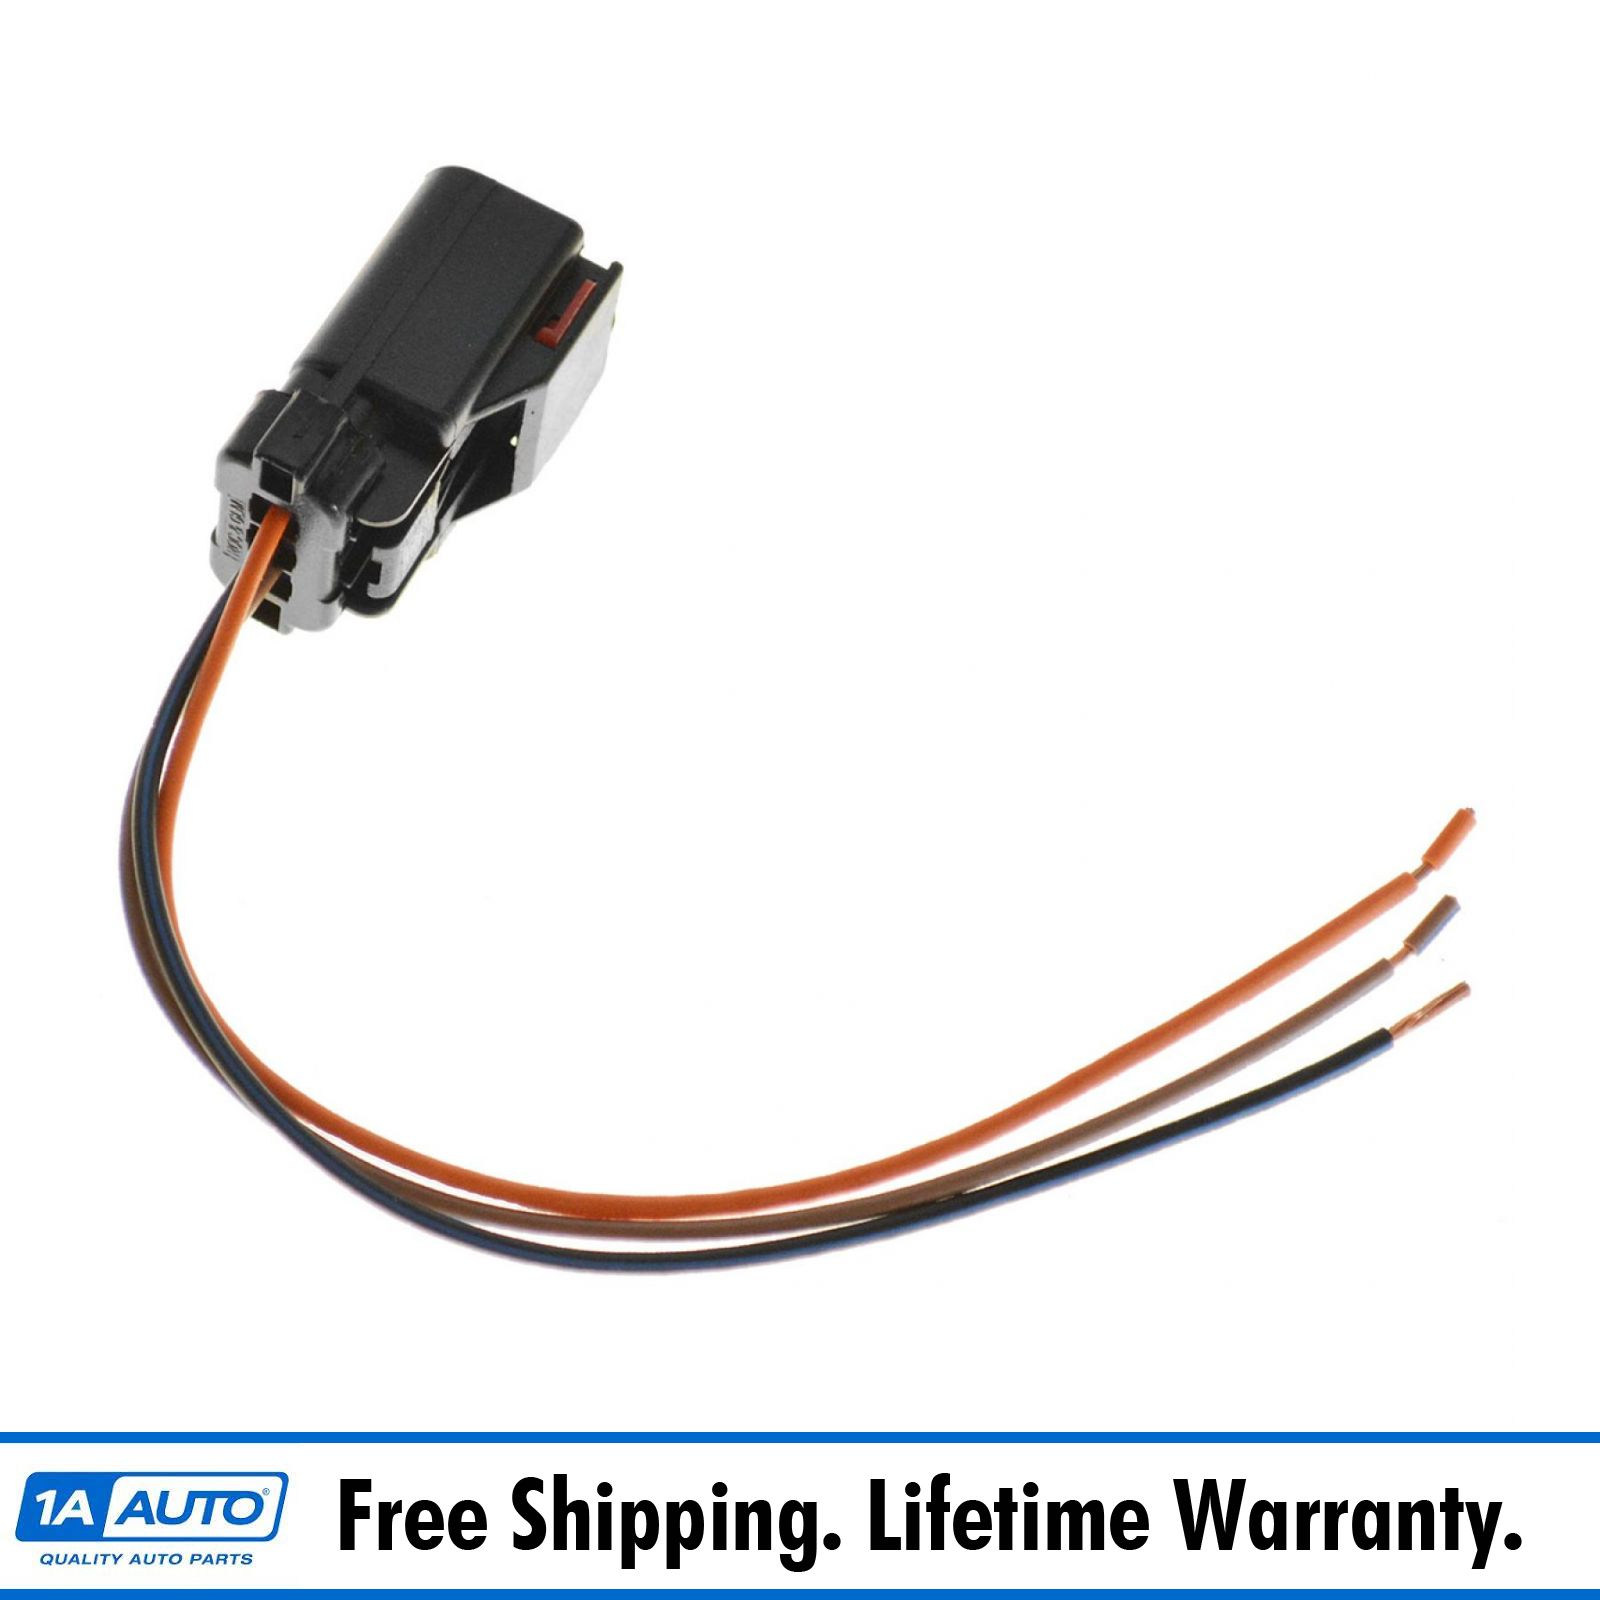 1AZWH00076 wiring connector pigtail harness 3 terminal pin for chrysler dodge 1984 dodge w150 wiring harness at gsmportal.co